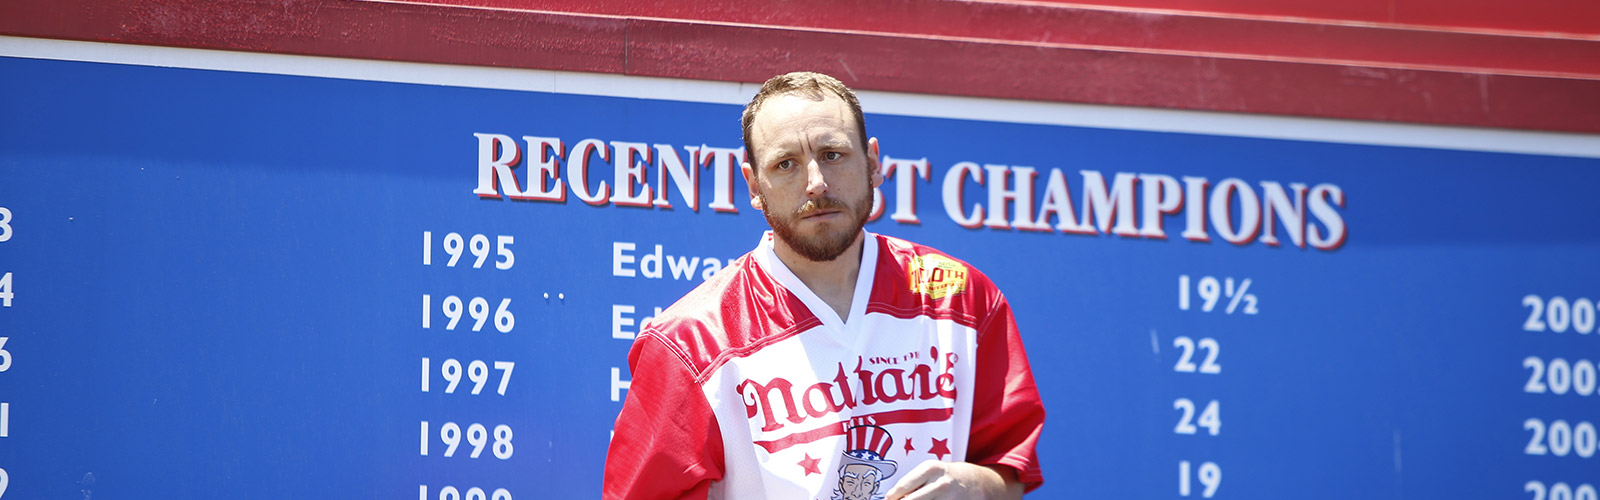 Joey Chestnut Eating Contest